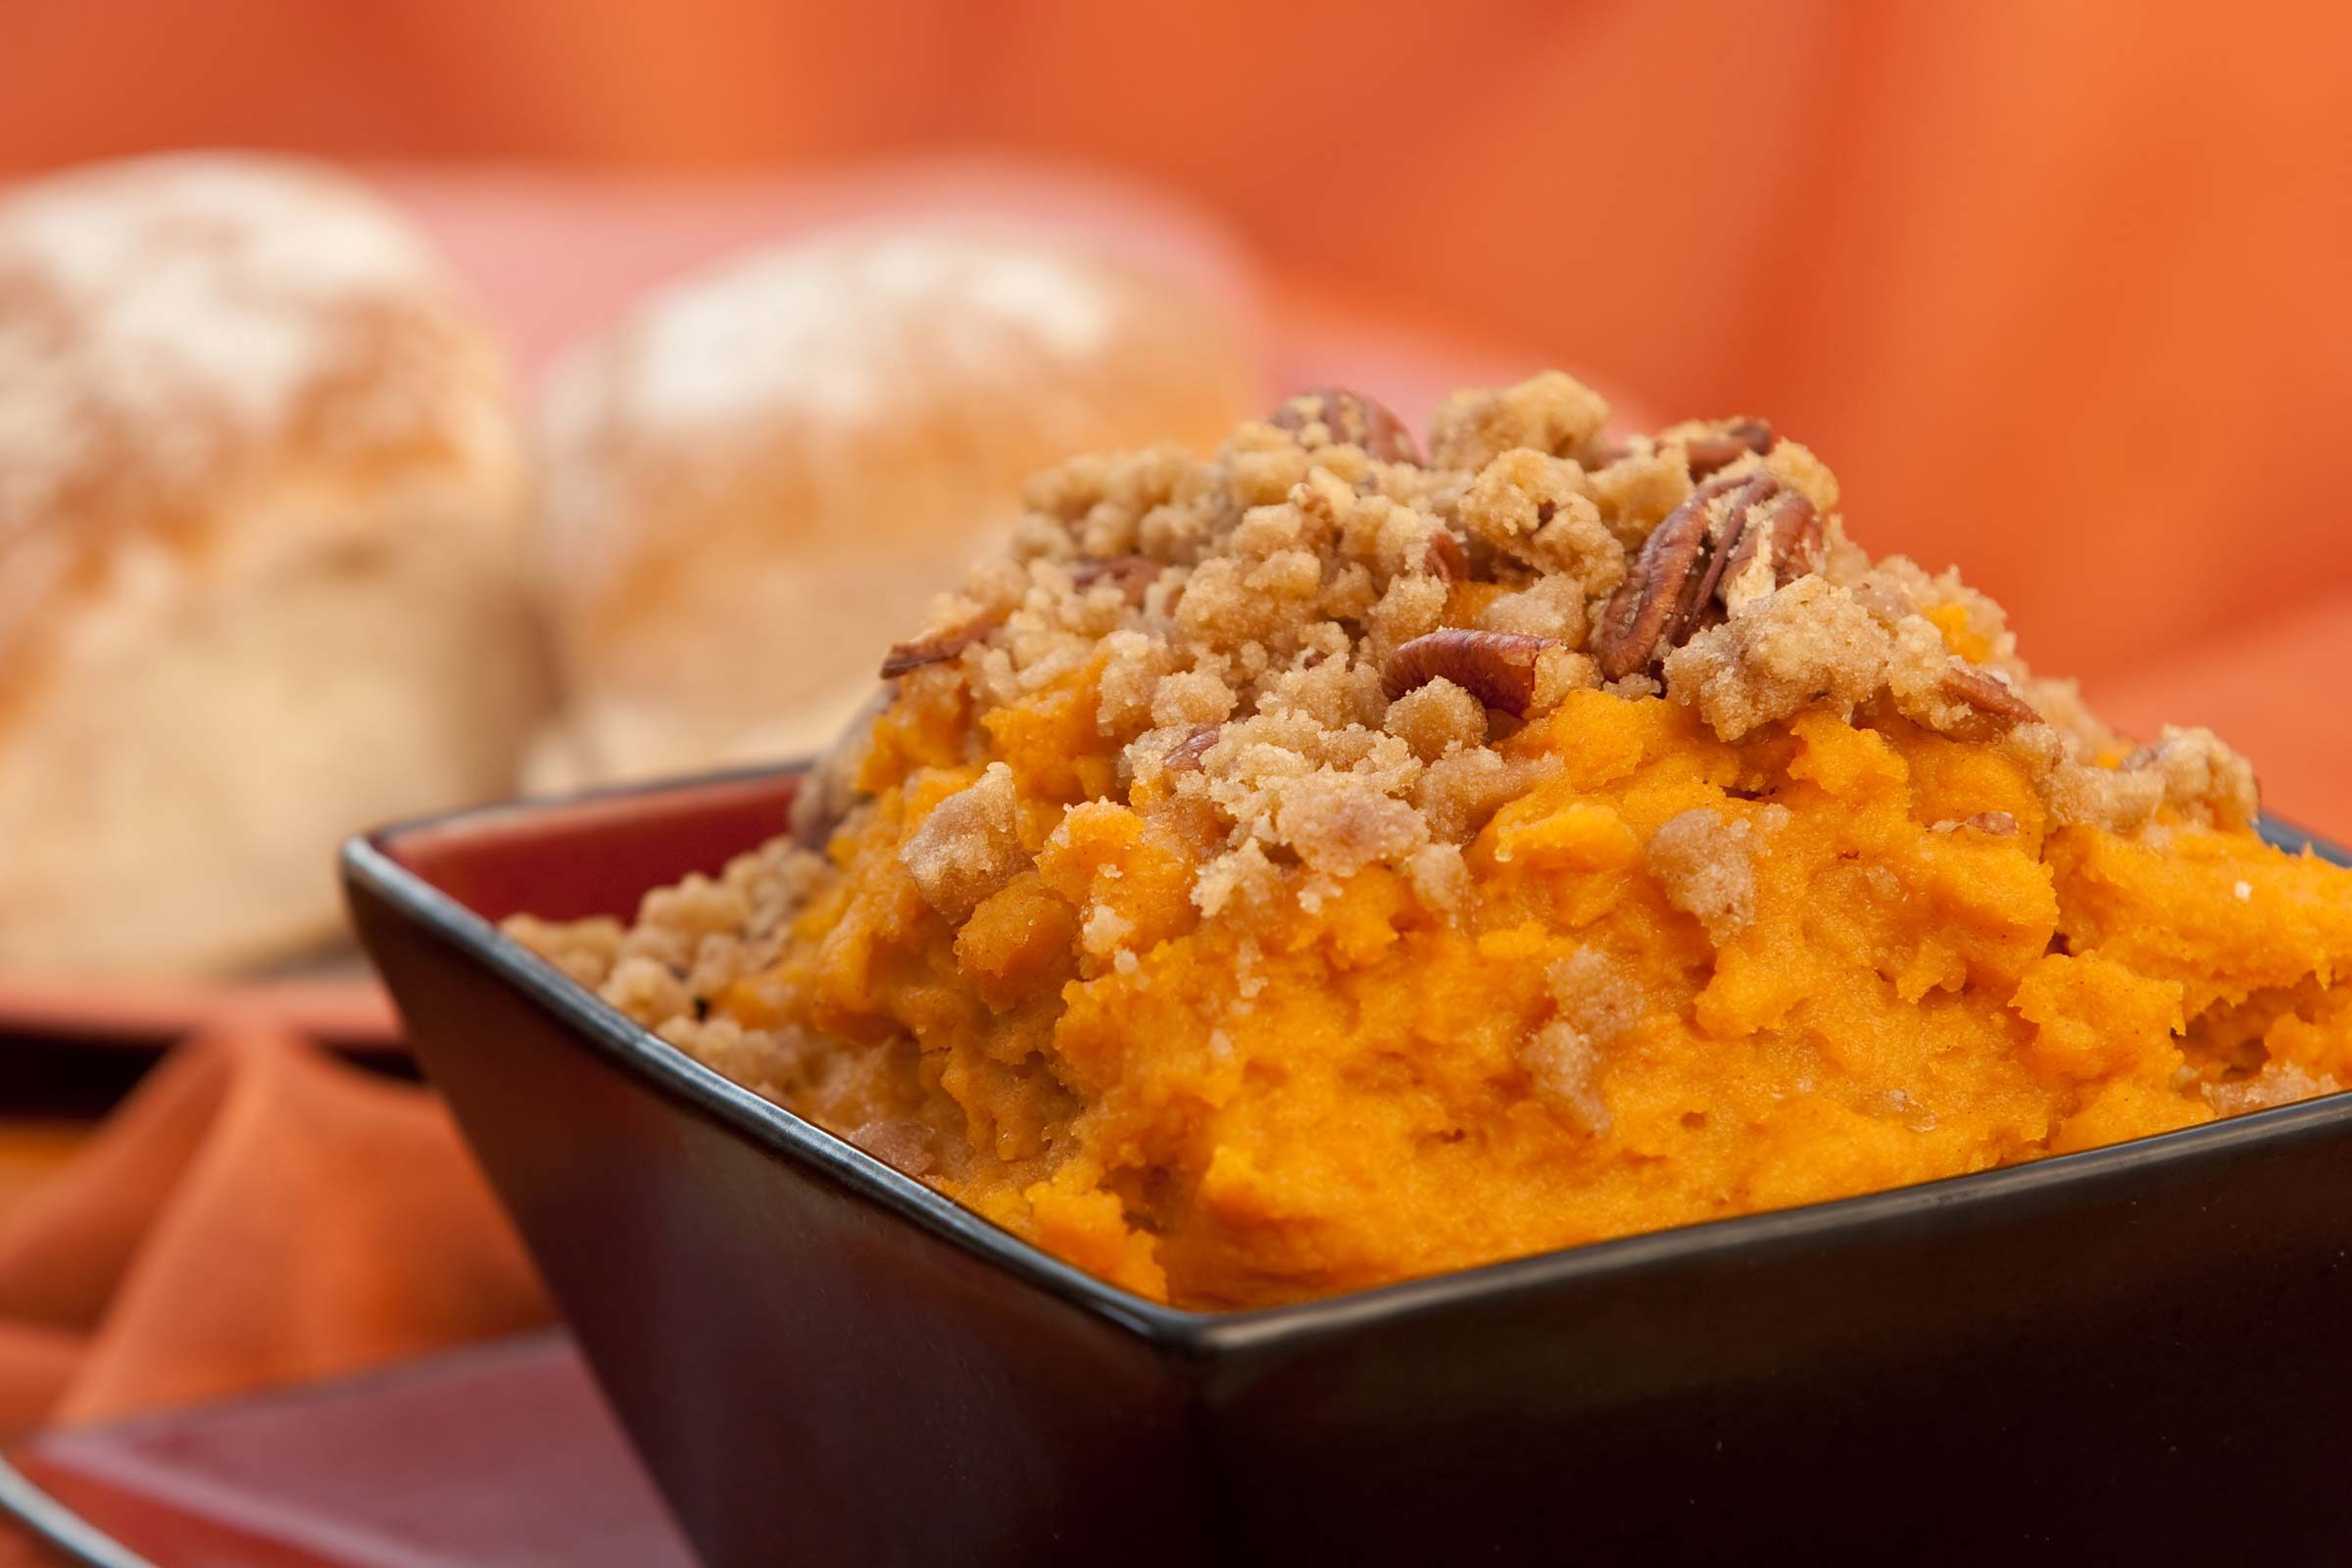 If you love sweet-potato casserole